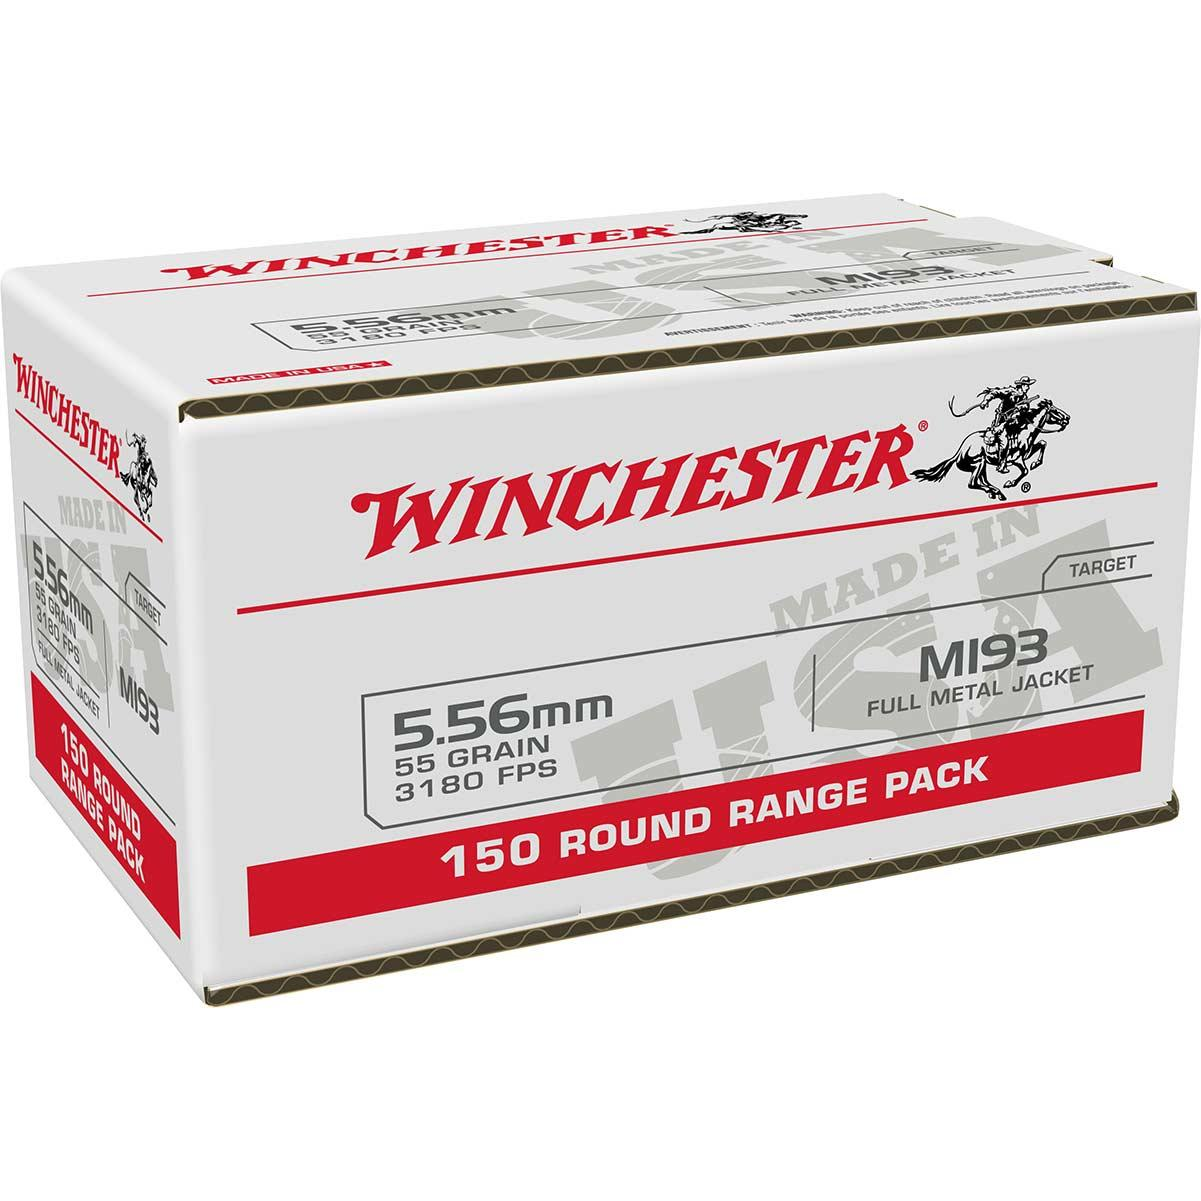 Winchester M193 5.56mm Full Metal Jacket, 150 Rounds_1.jpg